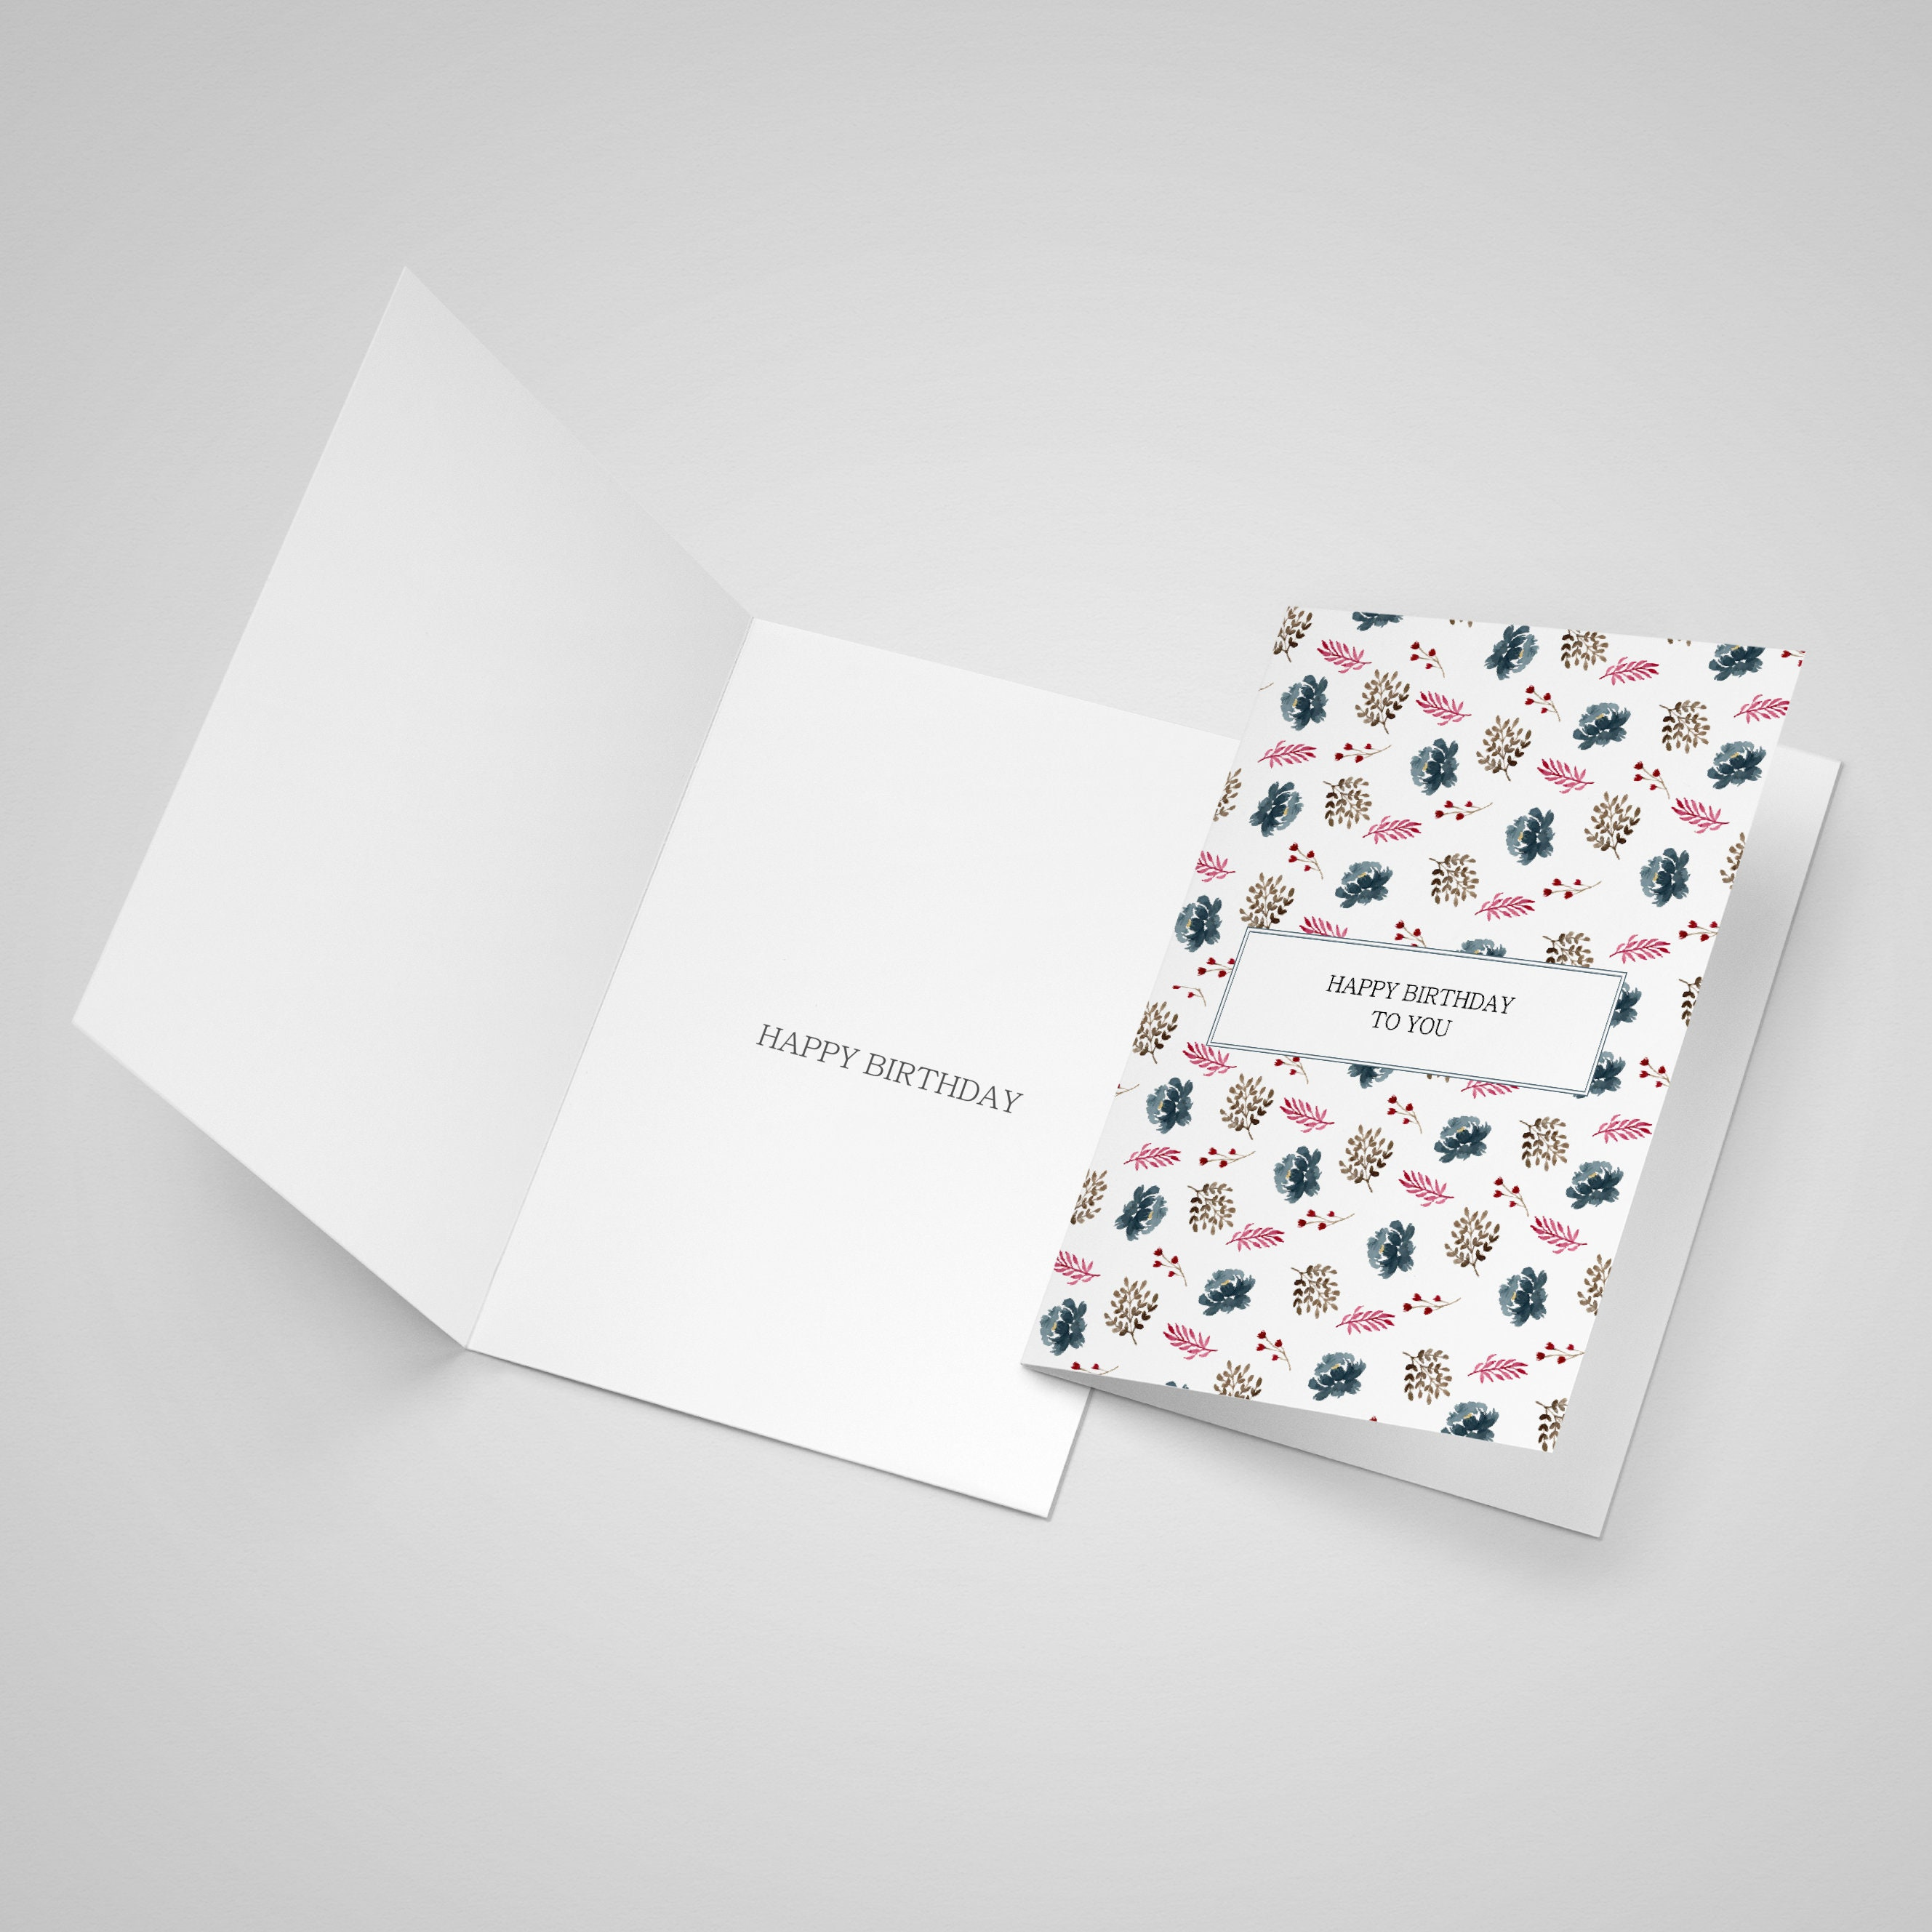 """Open card showing that the inside of the card has a """"Happy Birthday"""" message printed inside"""